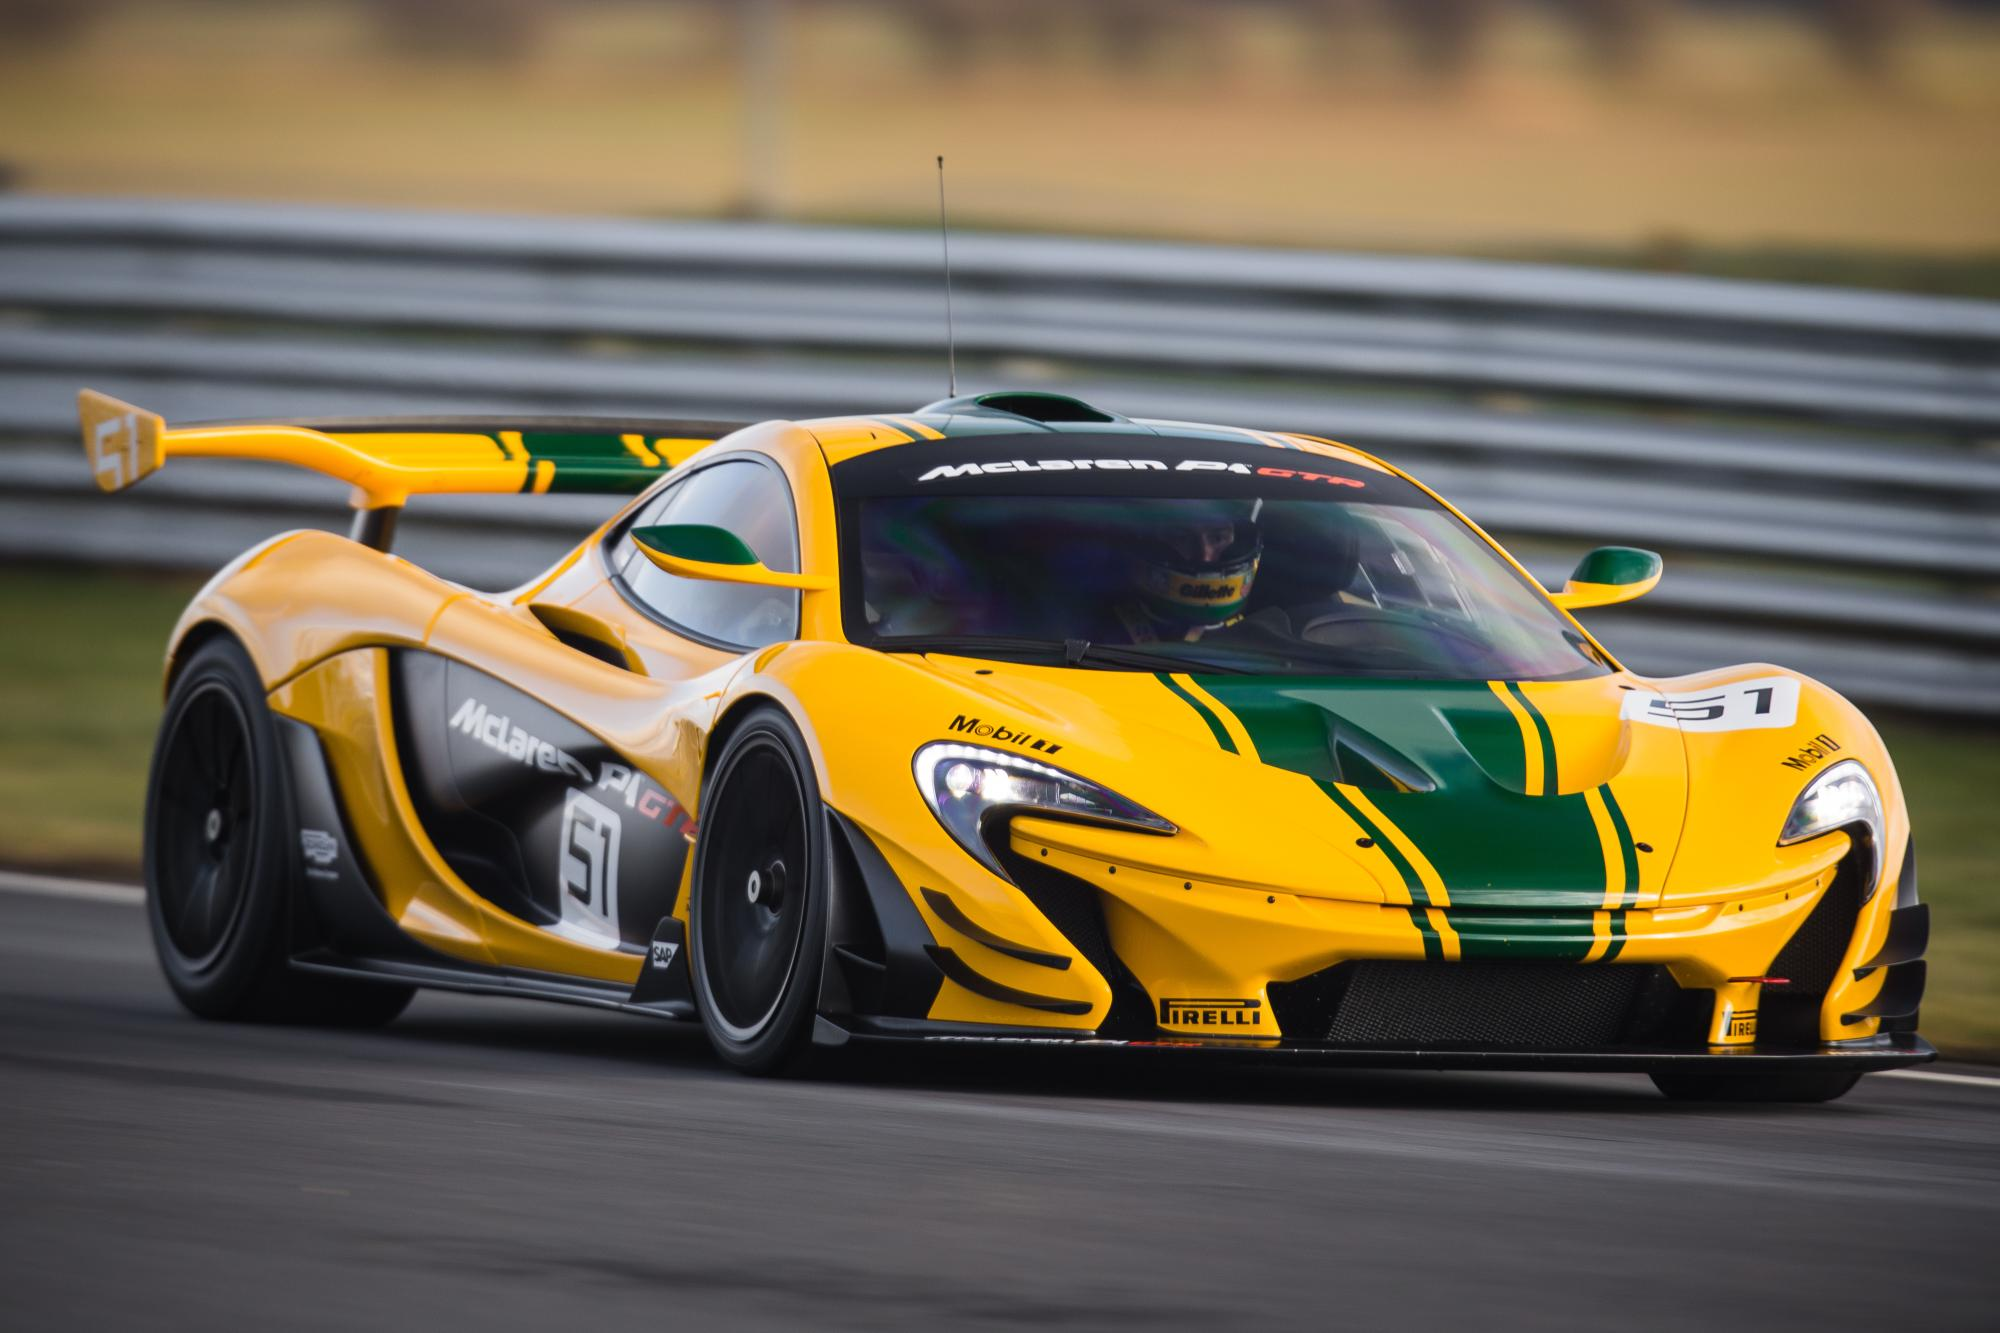 Mclaren P1 Gtr Logo >> Road Legal McLaren P1 GTR For Sale at $7.2 Million in Italy - GTspirit